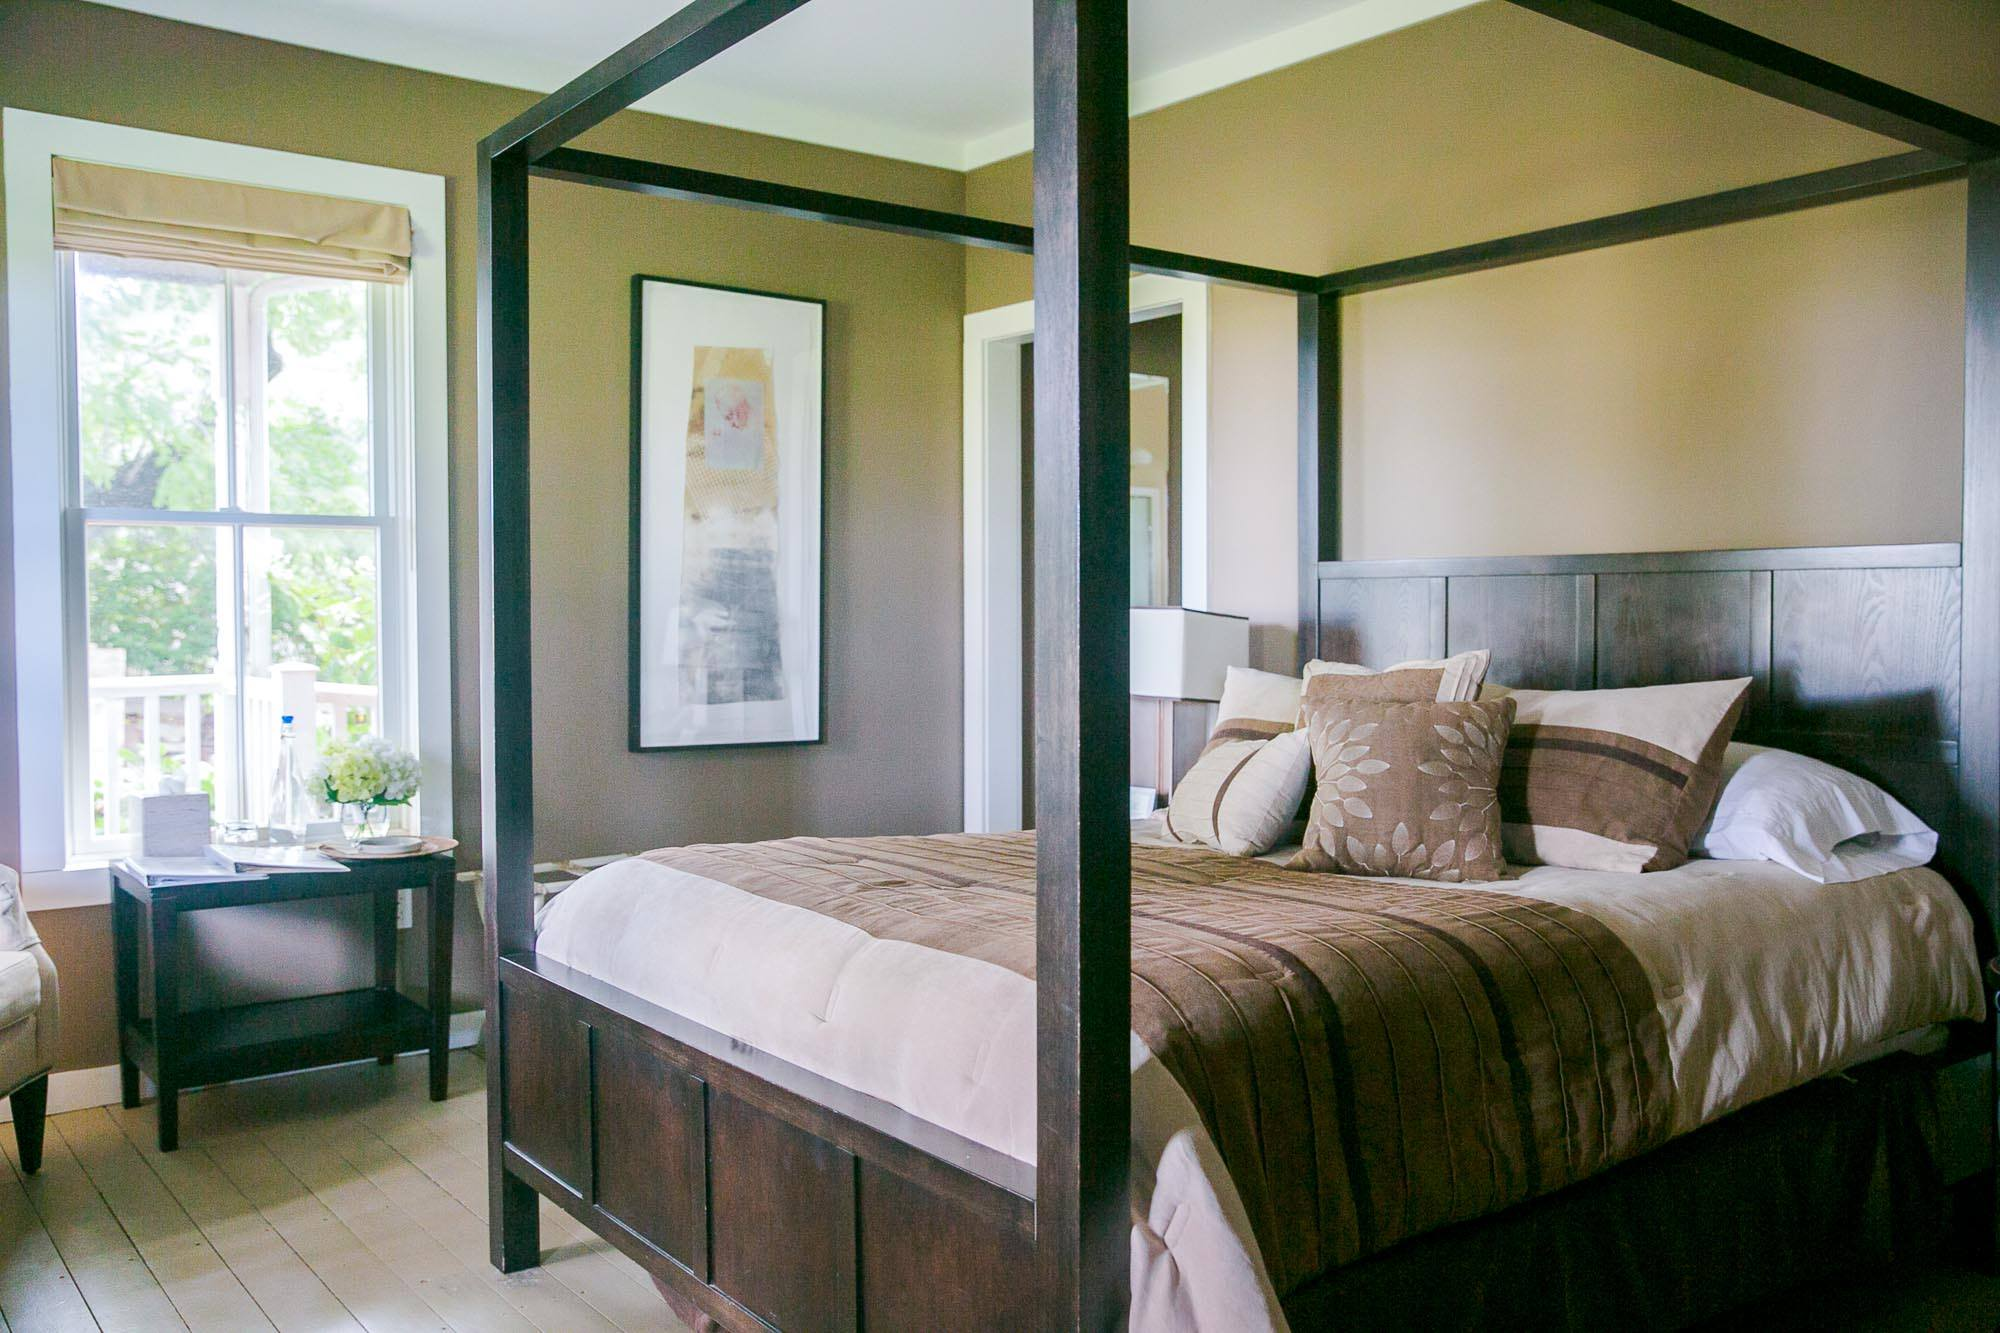 Shinn Estate Farmhouse Bed Spend The Night At An East End Winery Long Island Pulse Magazine